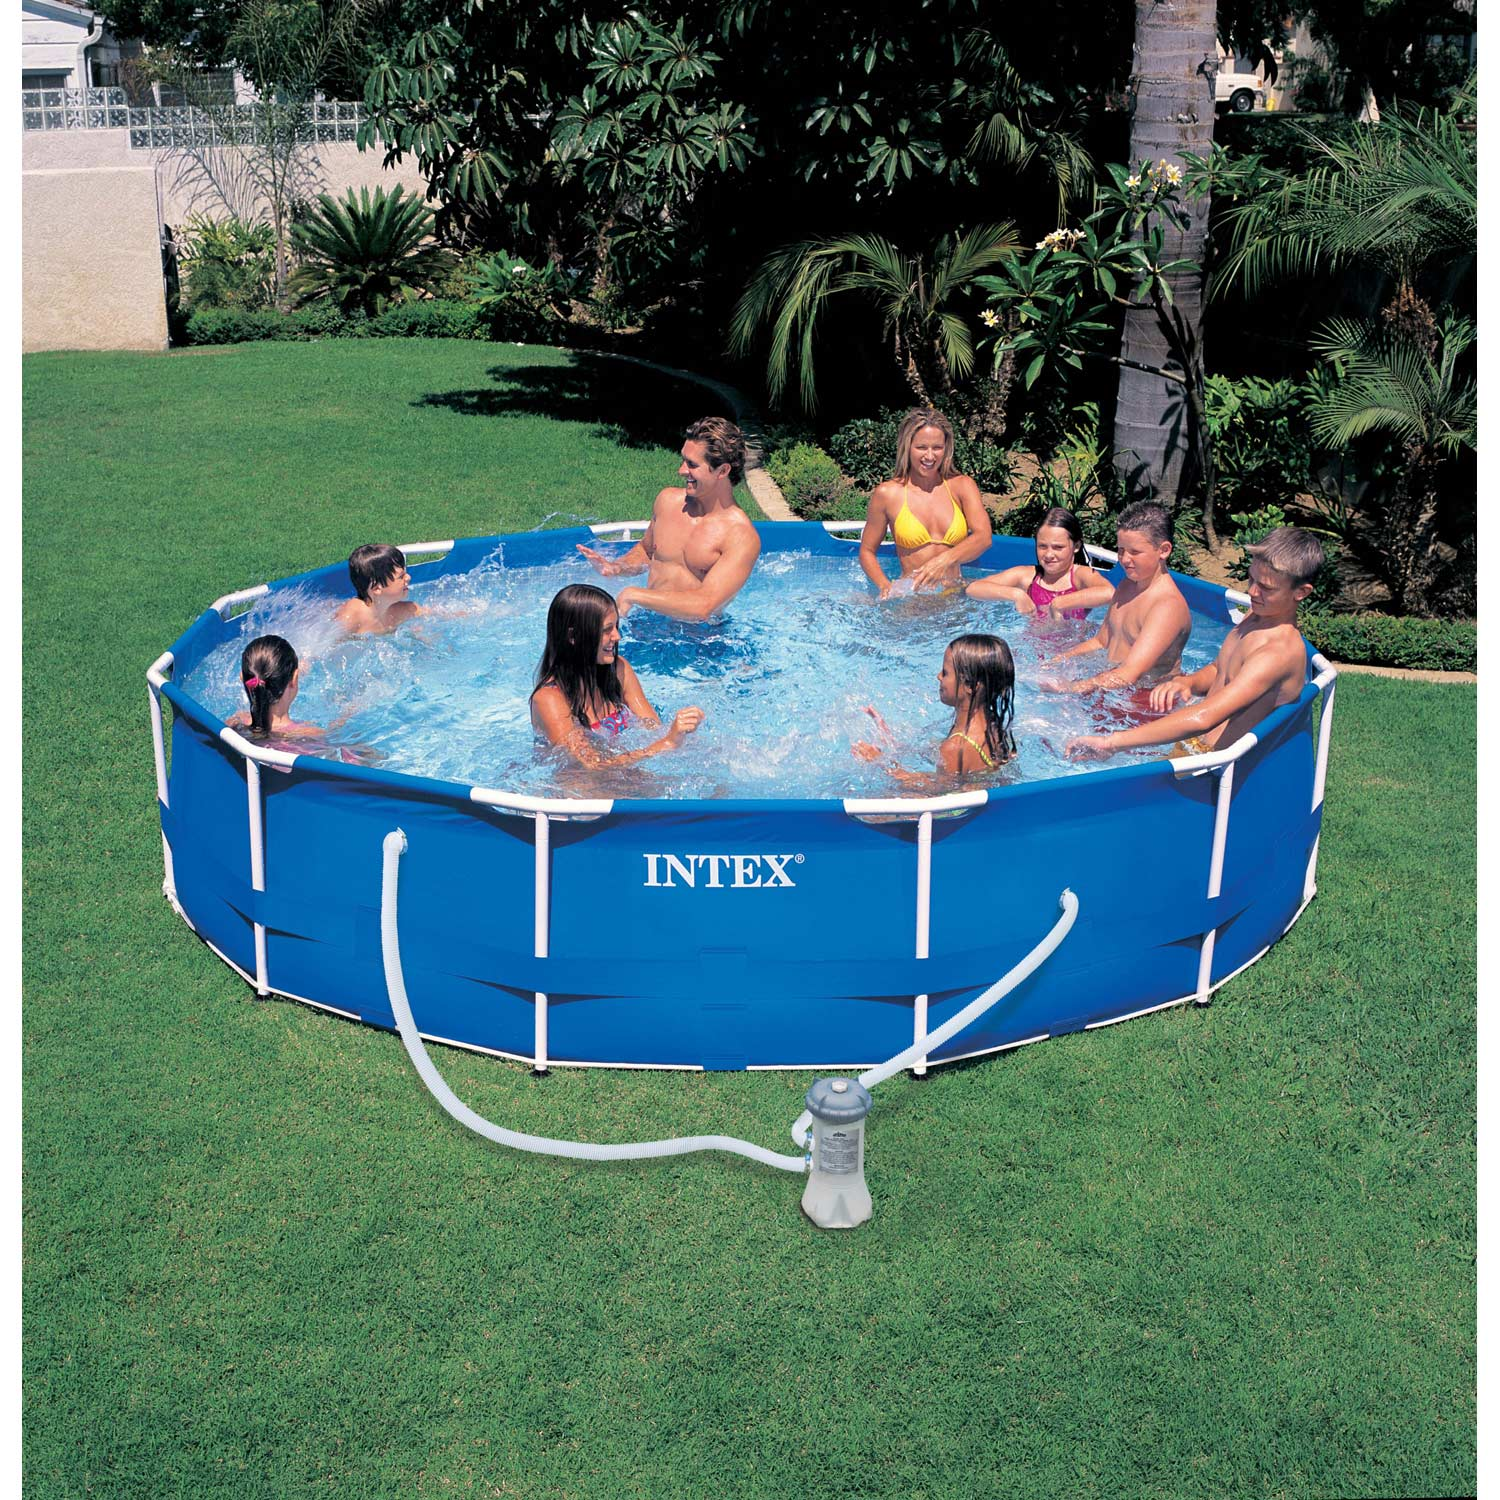 Piscine hors sol autoportante tubulaire metal frame intex for Plongeoir piscine hors sol